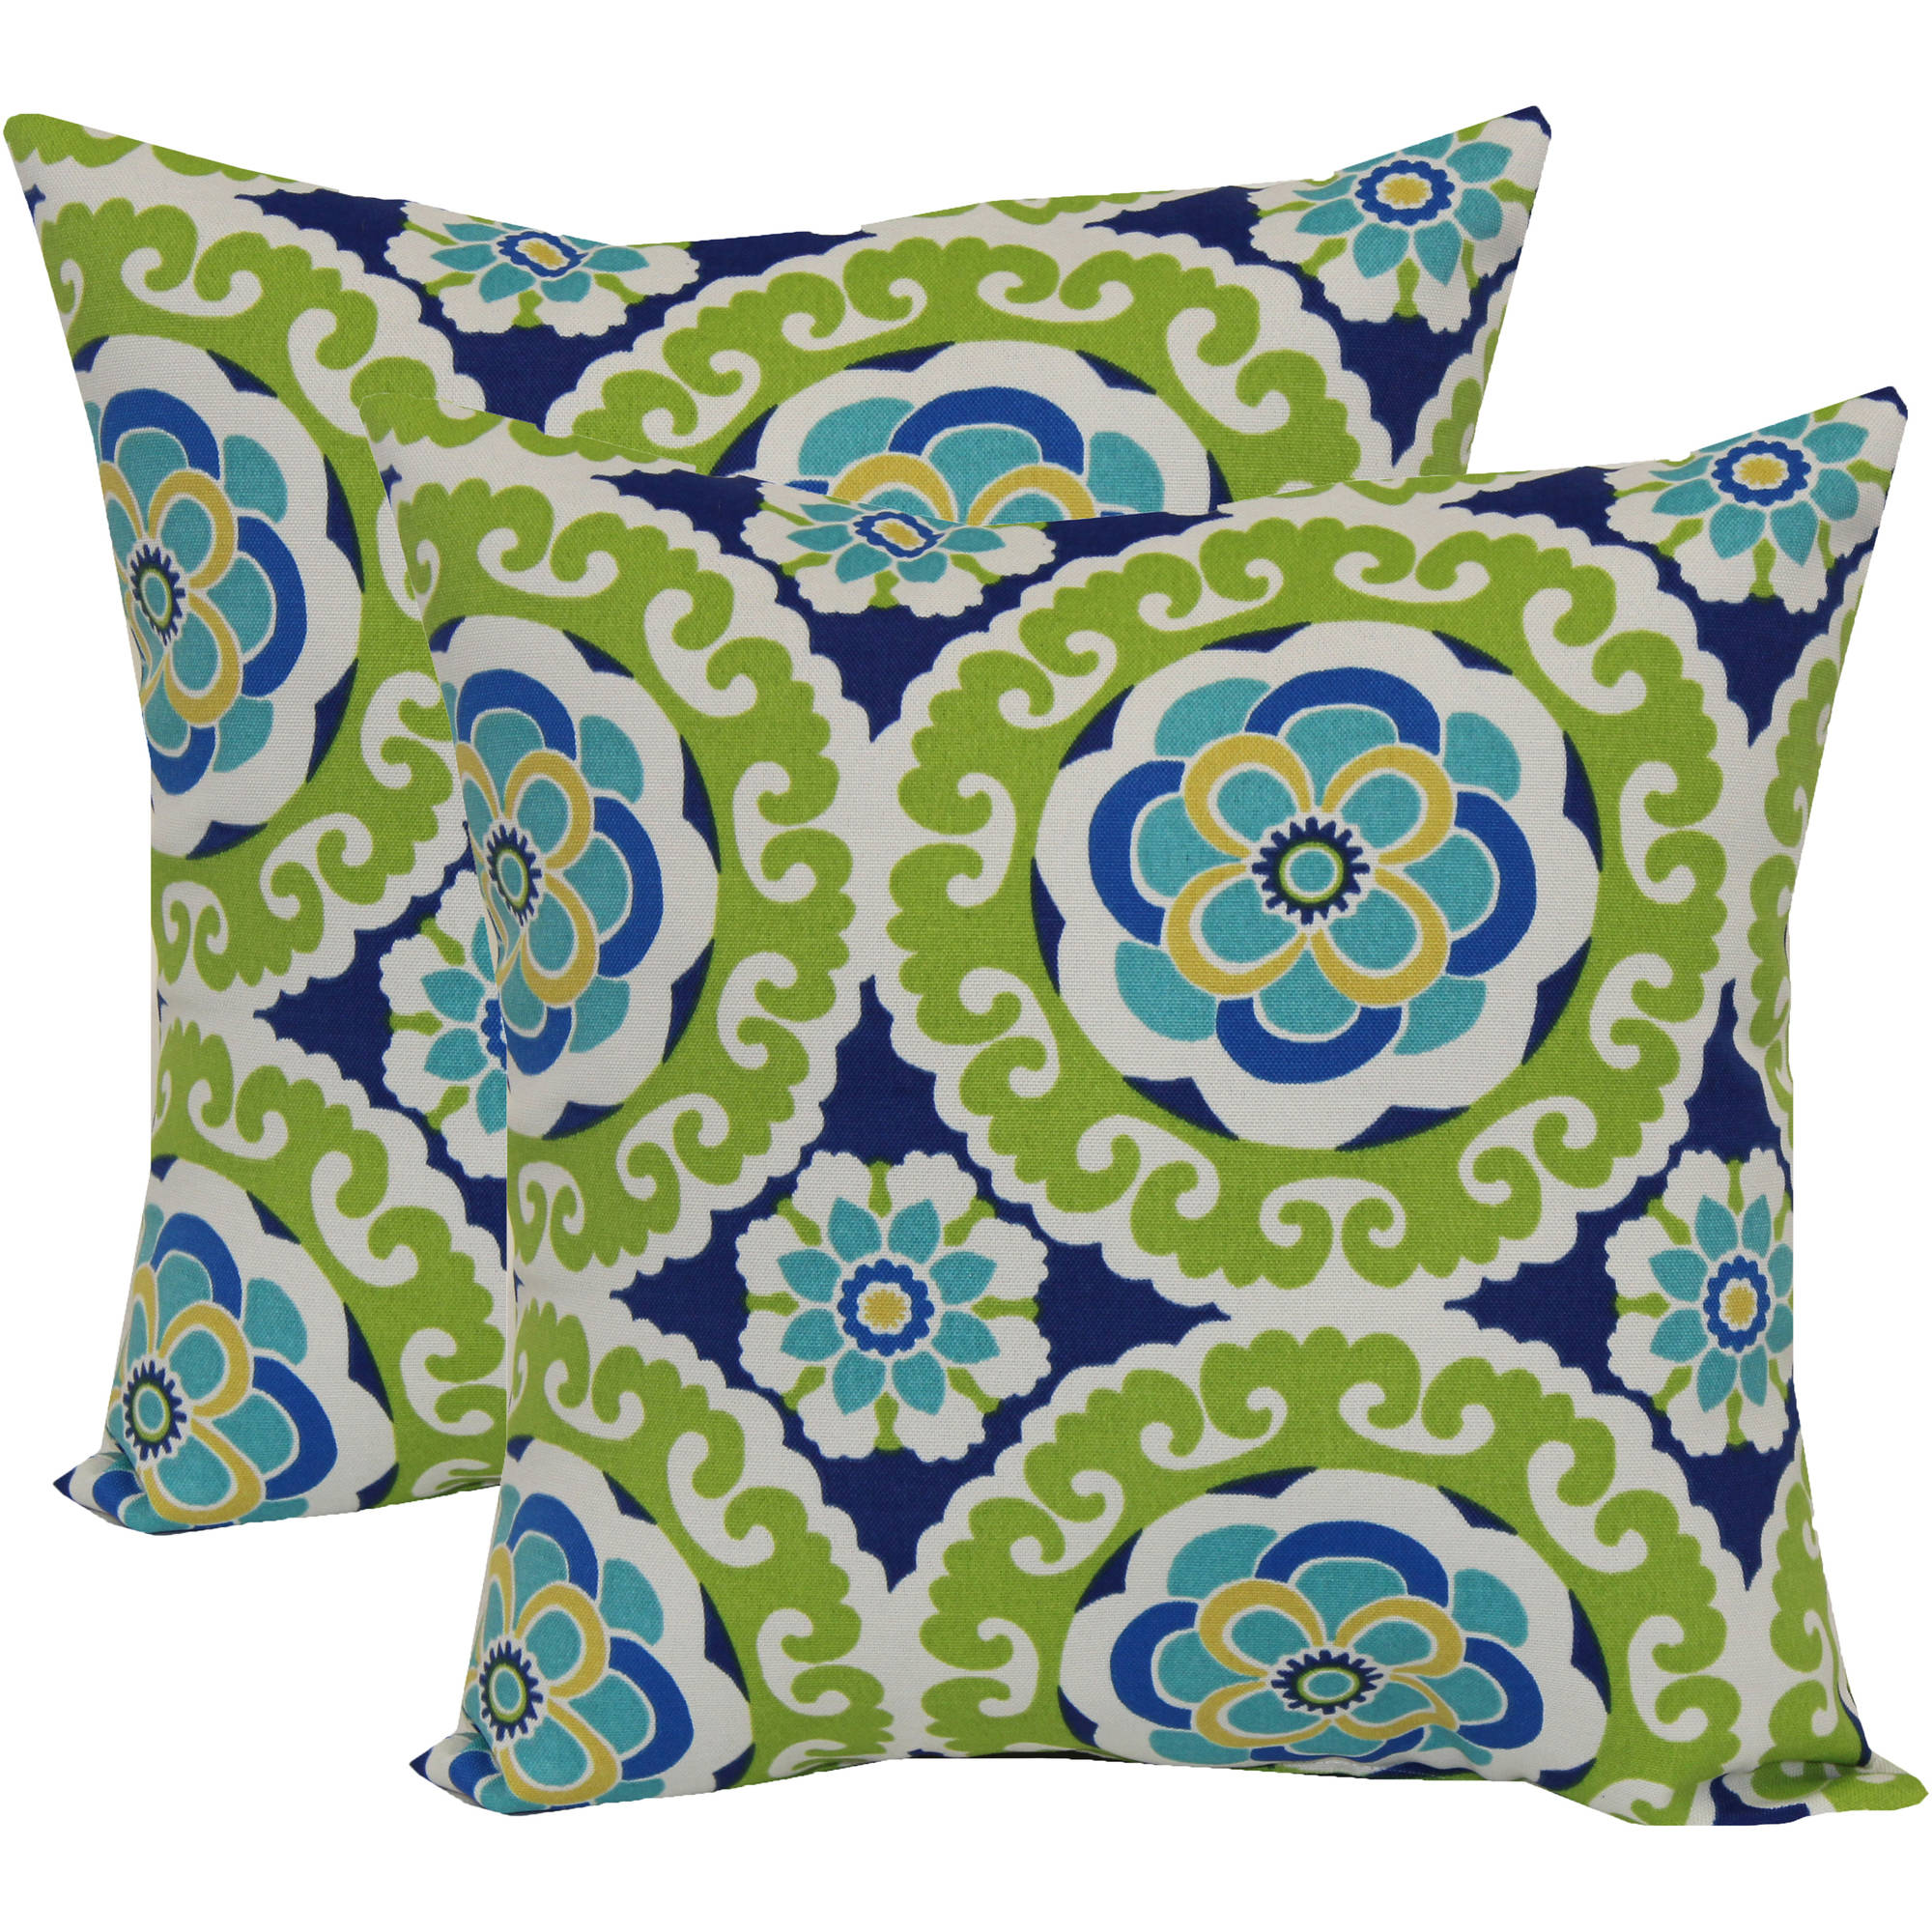 Mainstays Halina Outdoor Toss Pillow, 2 Pack